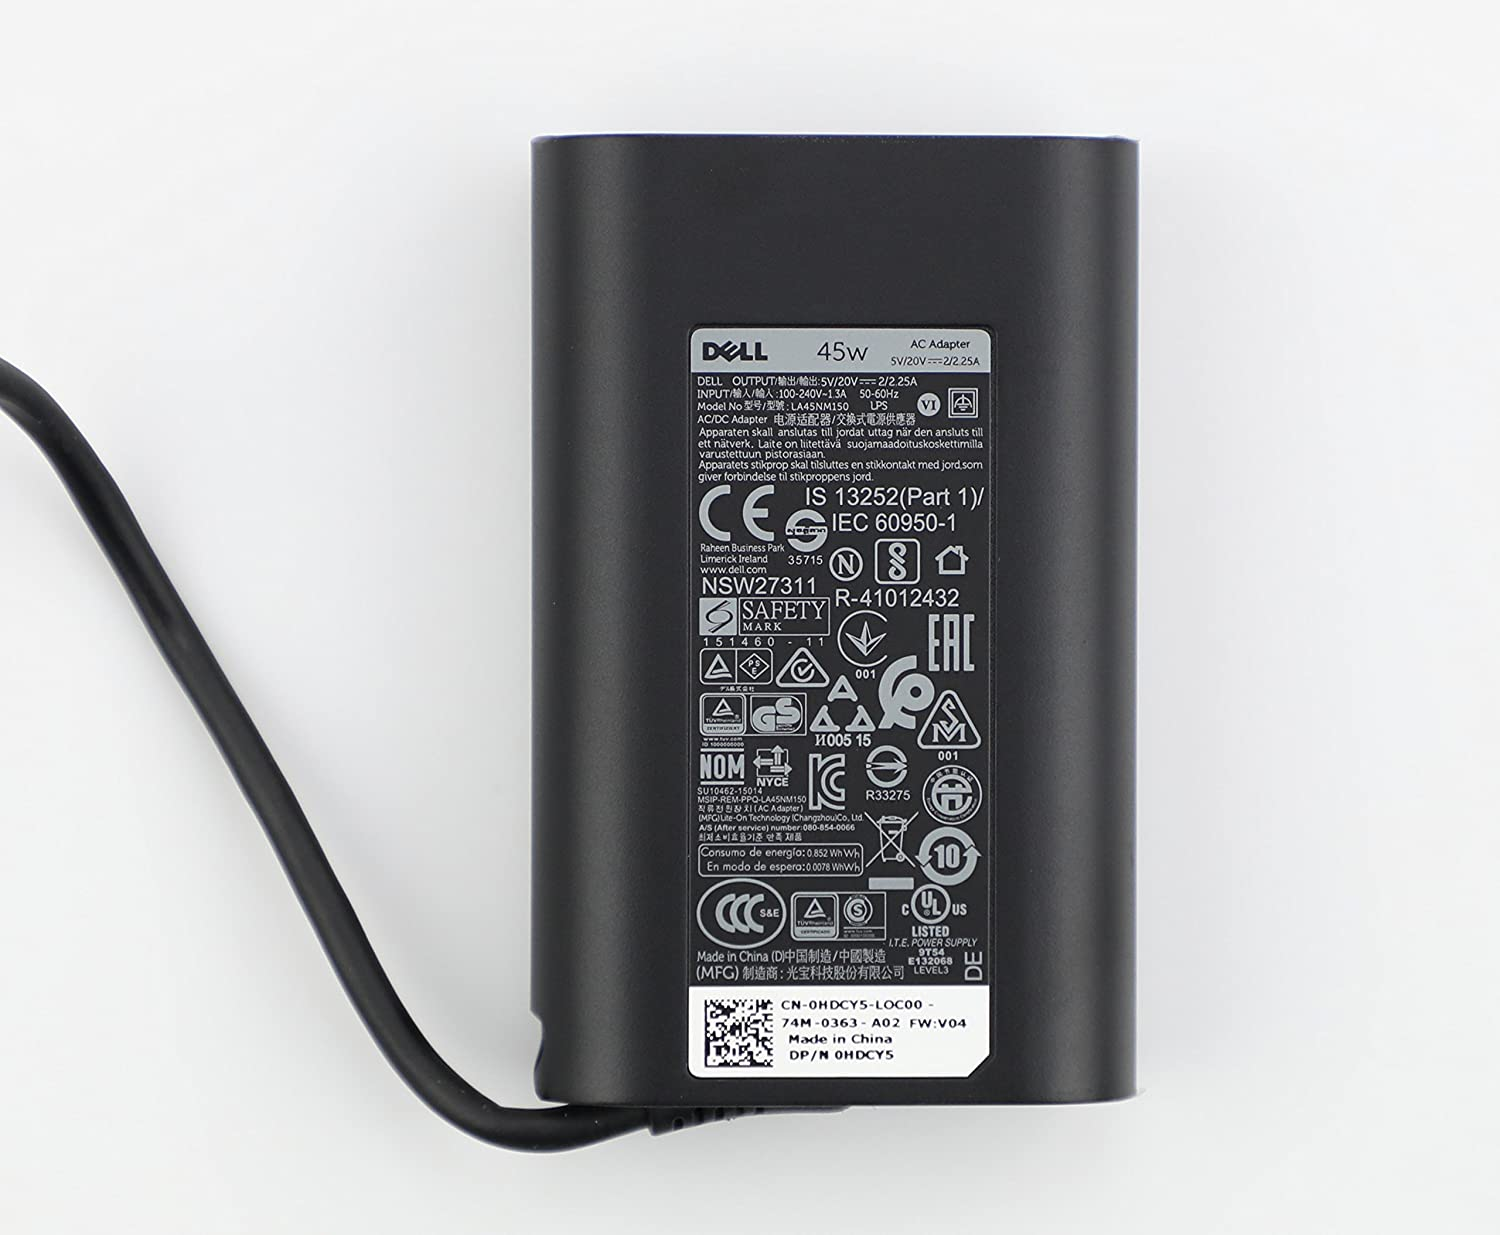 Dell 45W USB-C AC Adapter for Dell P/N: LA45NM150, HDCY5, 0HDCY5, DA30NM150, 8XTW5, 08XTW5, ADP-30CD BA, 24YNH, 492-BBSP, 5FX88, 470-ABSF. …